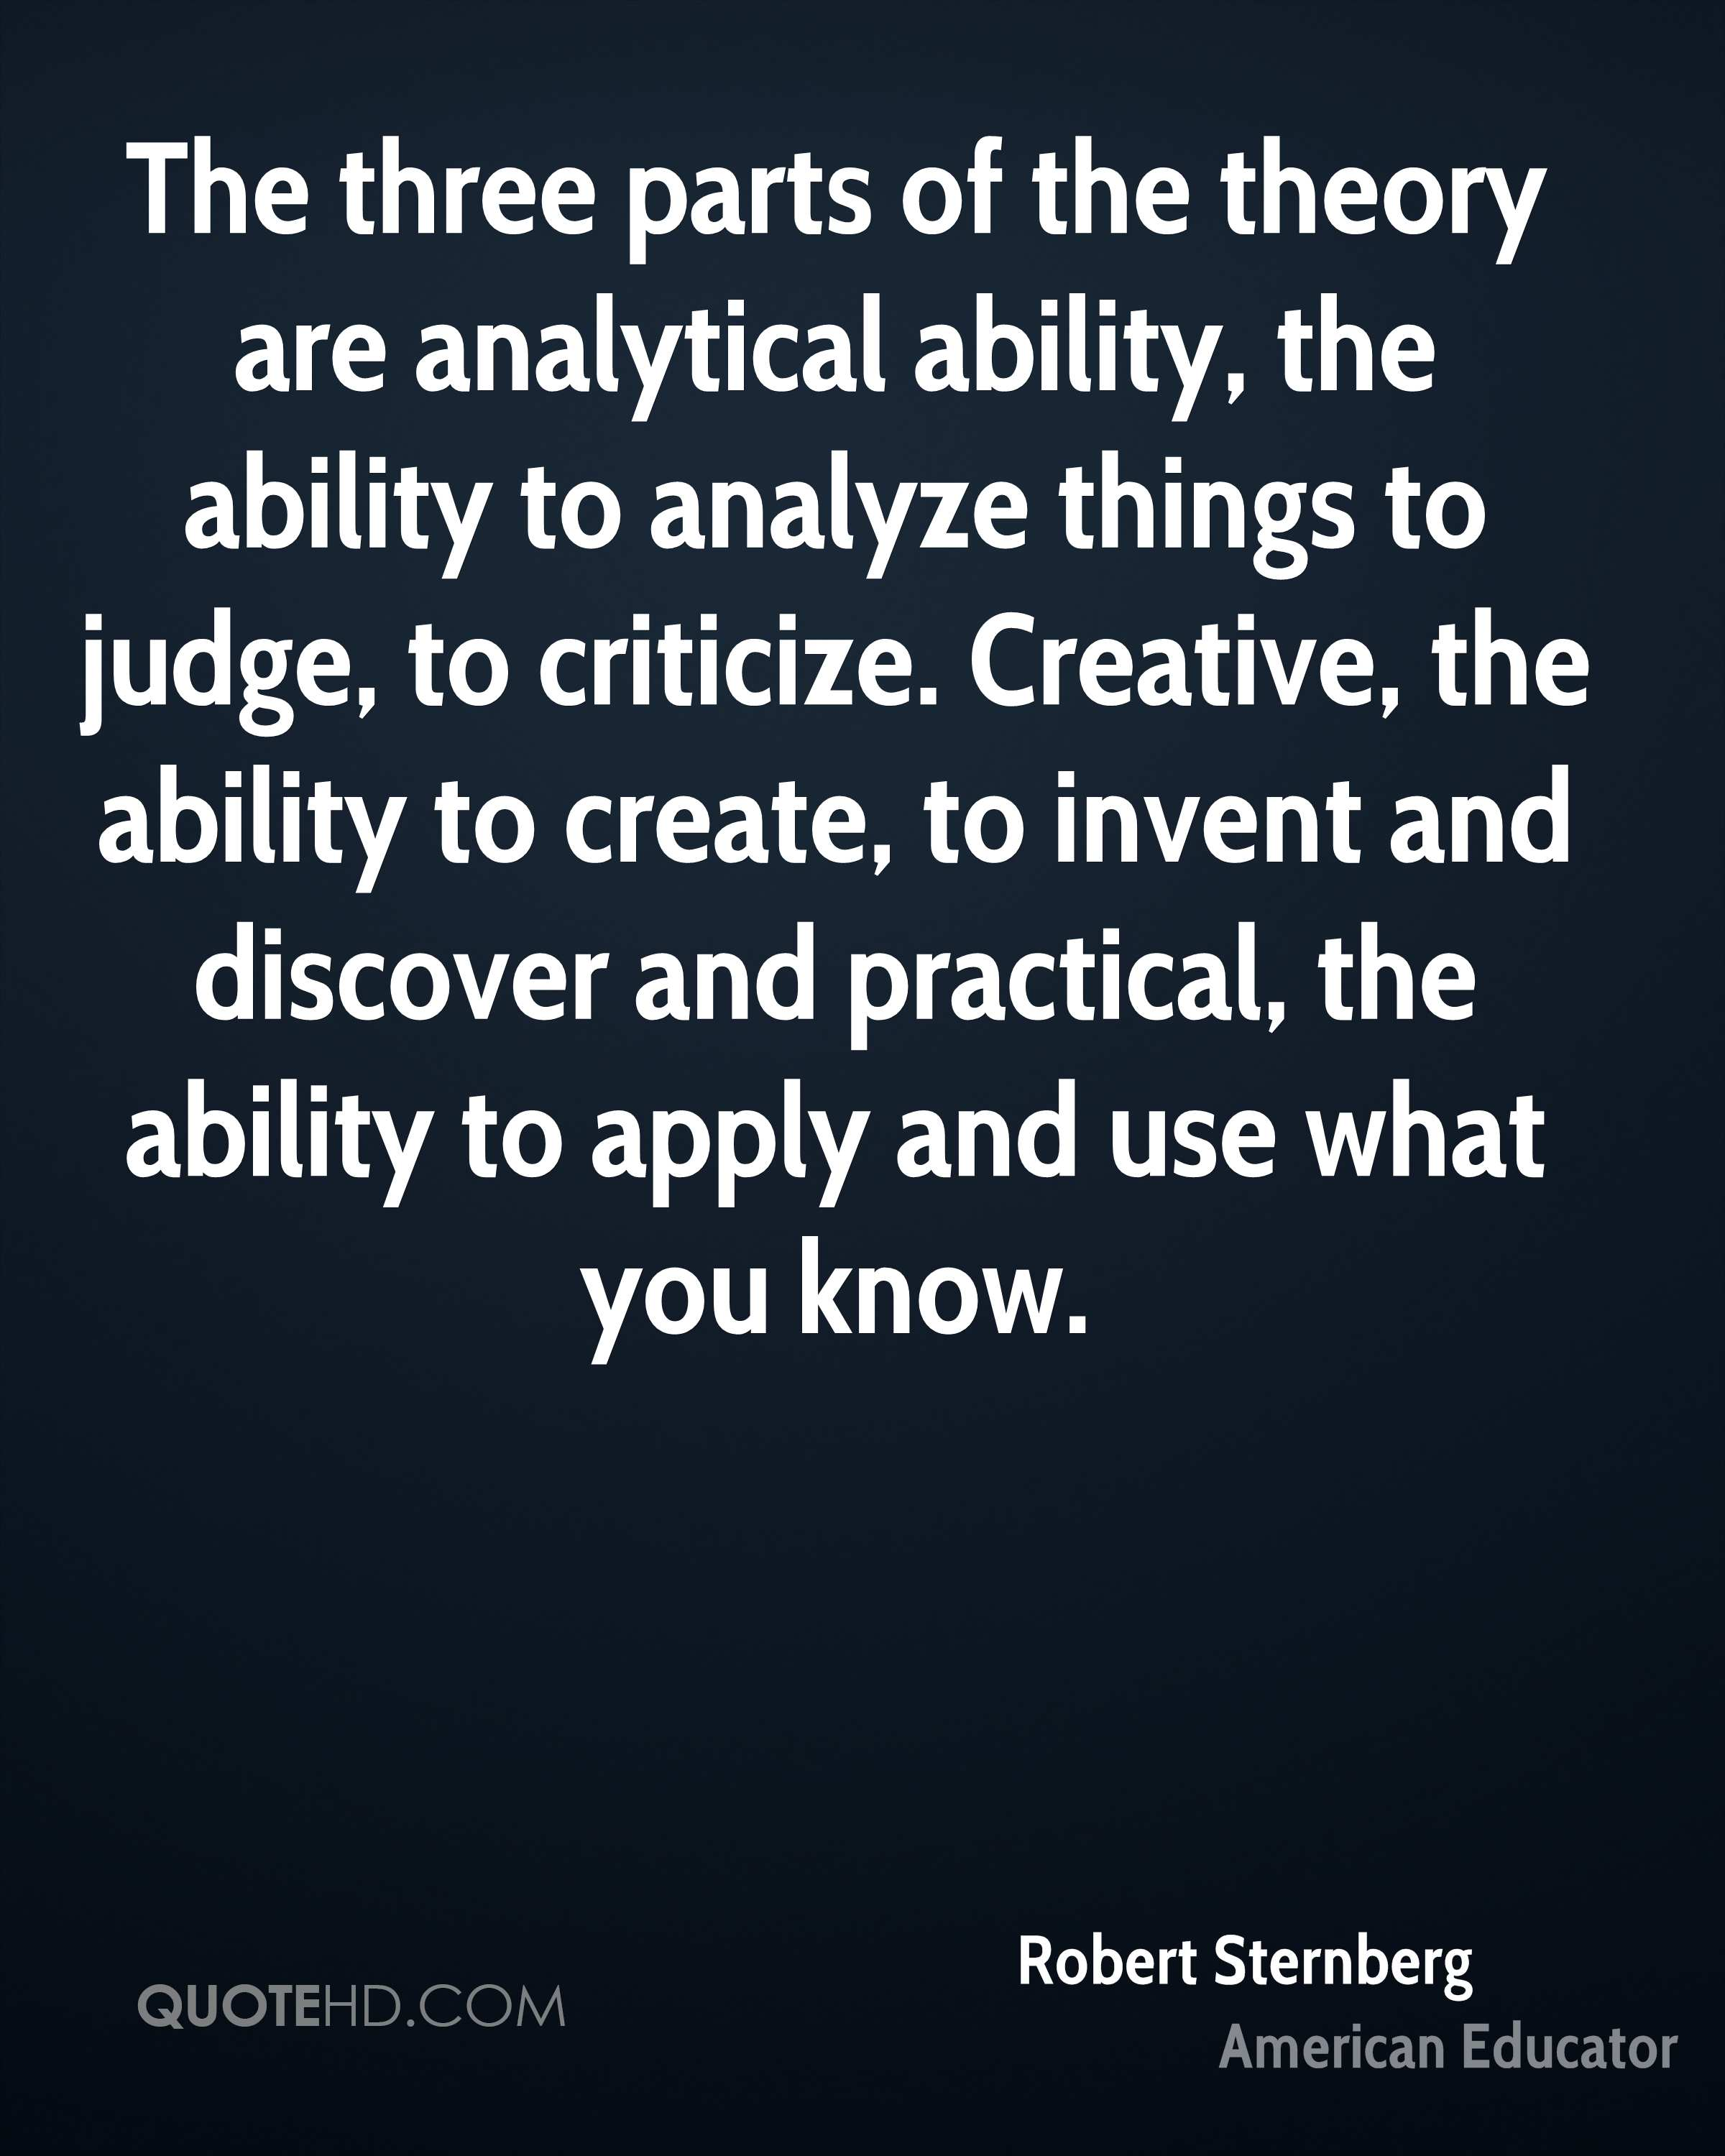 robert sternberg quotes quotehd the three parts of the theory are analytical ability the ability to analyze things to